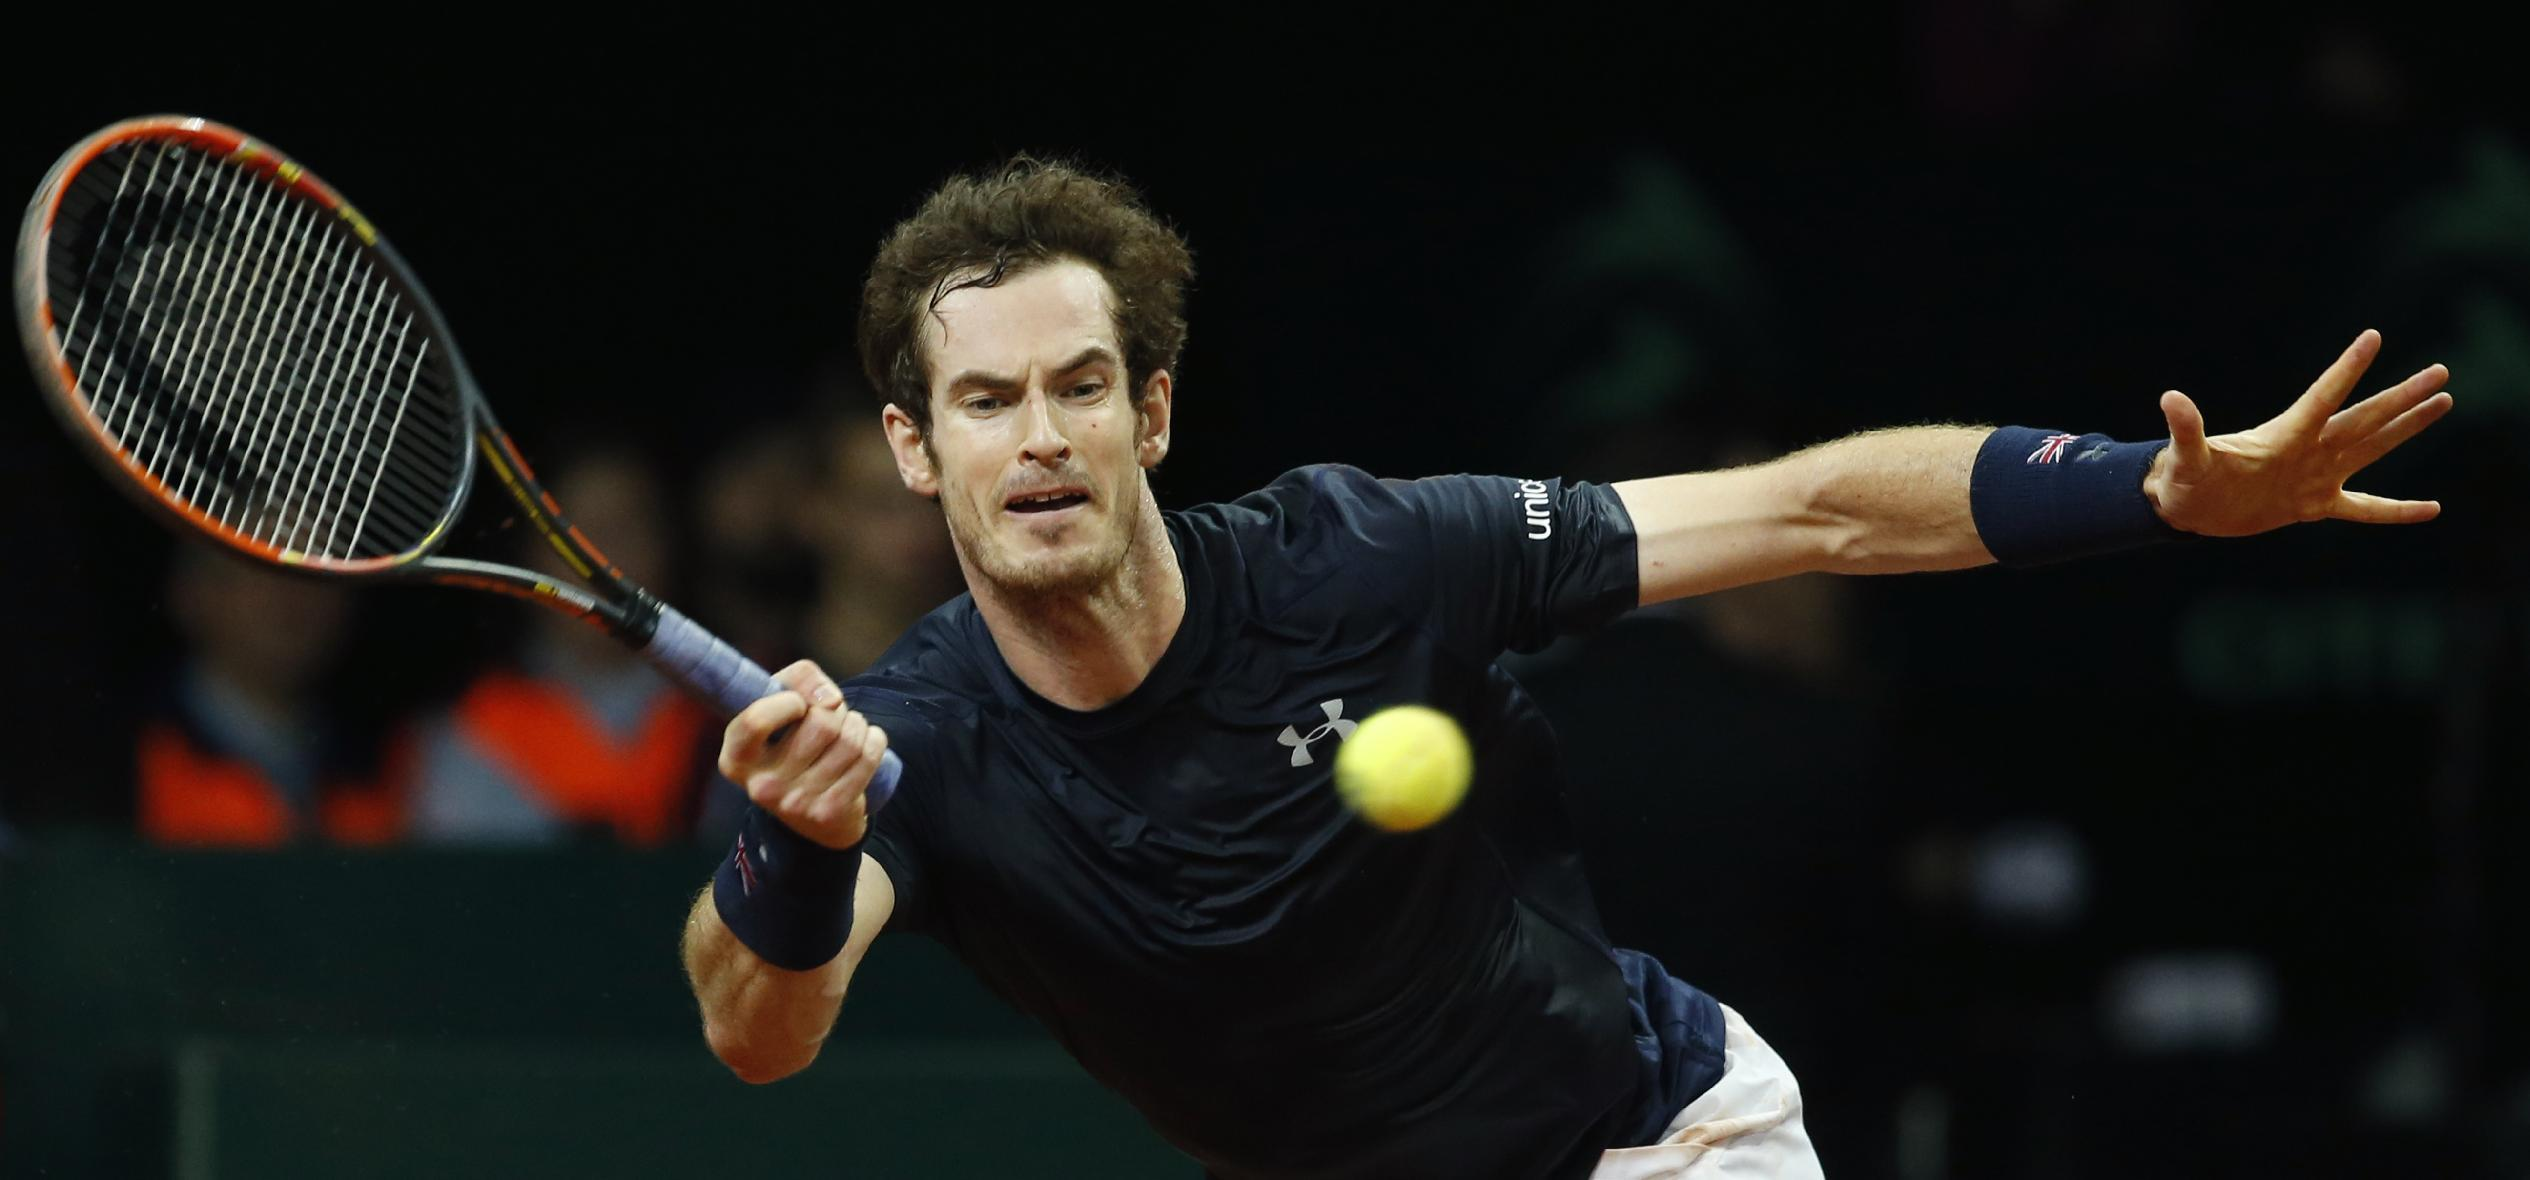 Britain and Belgium tied 1-1 after opening day in Davis Cup